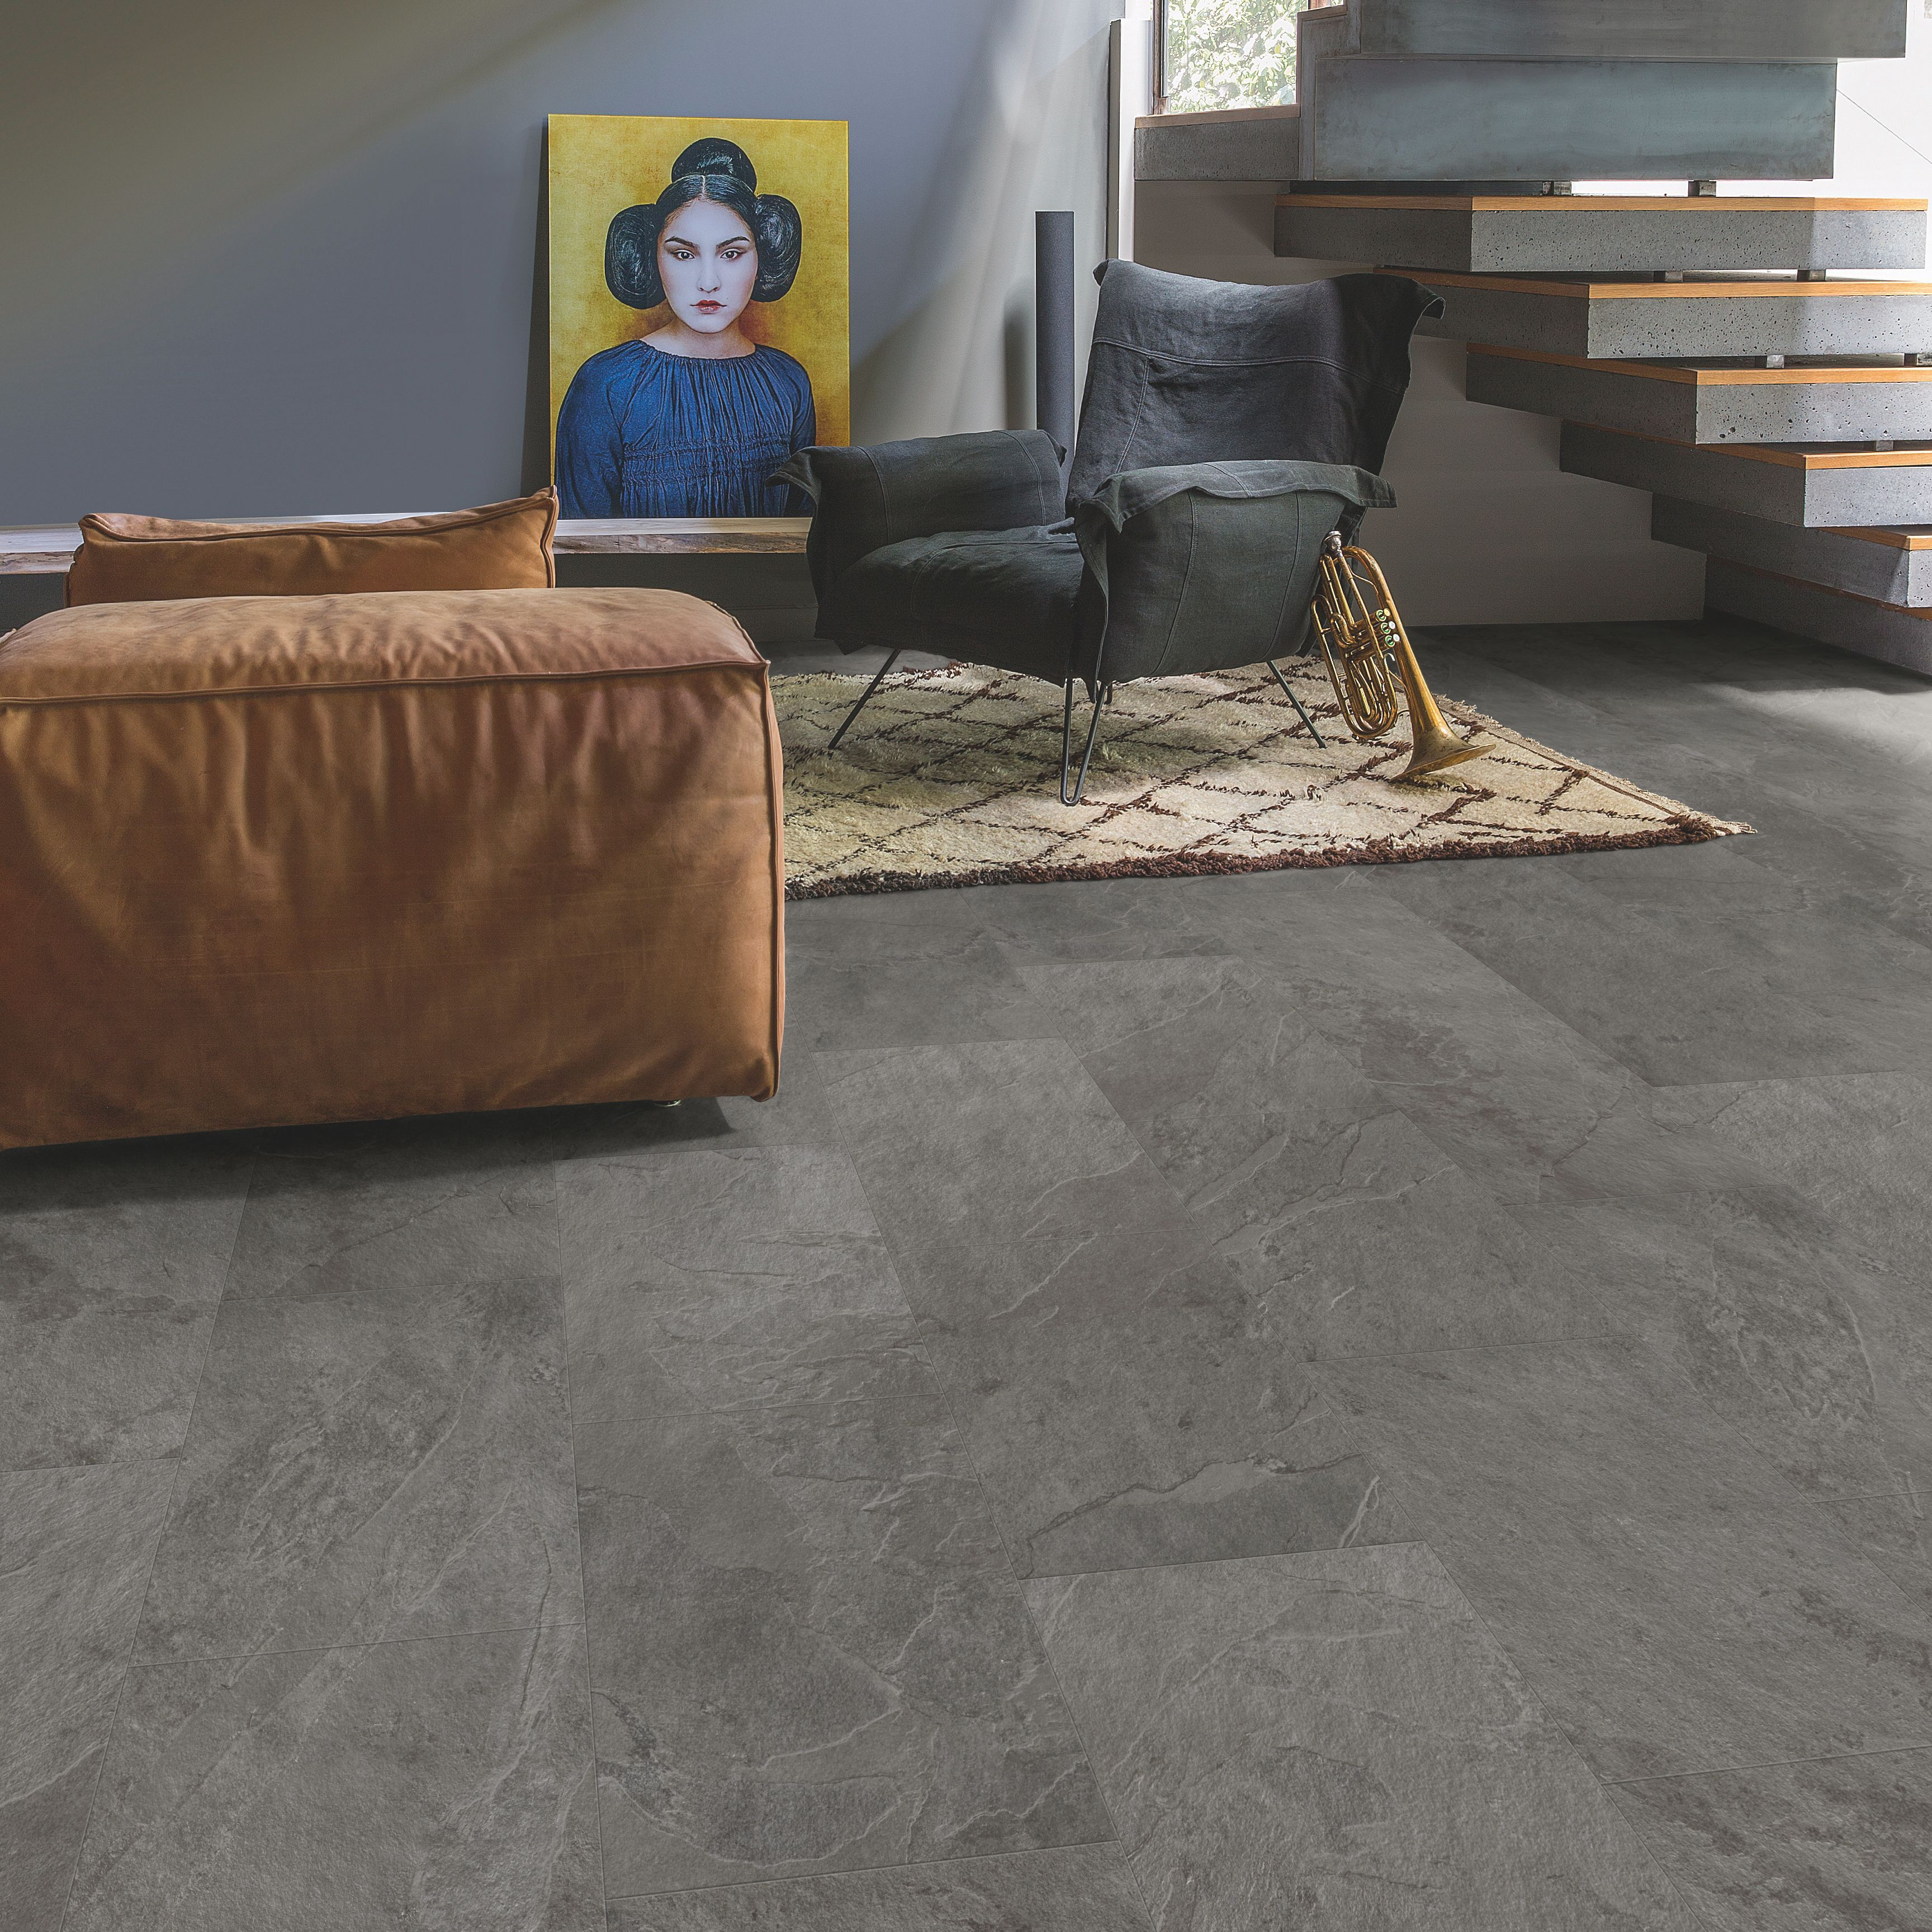 Step lima grey slate effect waterproof luxury vinyl flooring tile quick step lima grey slate effect waterproof luxury vinyl flooring tile m pack bq for all your home and garden supplies and advice on all the latest diy dailygadgetfo Gallery